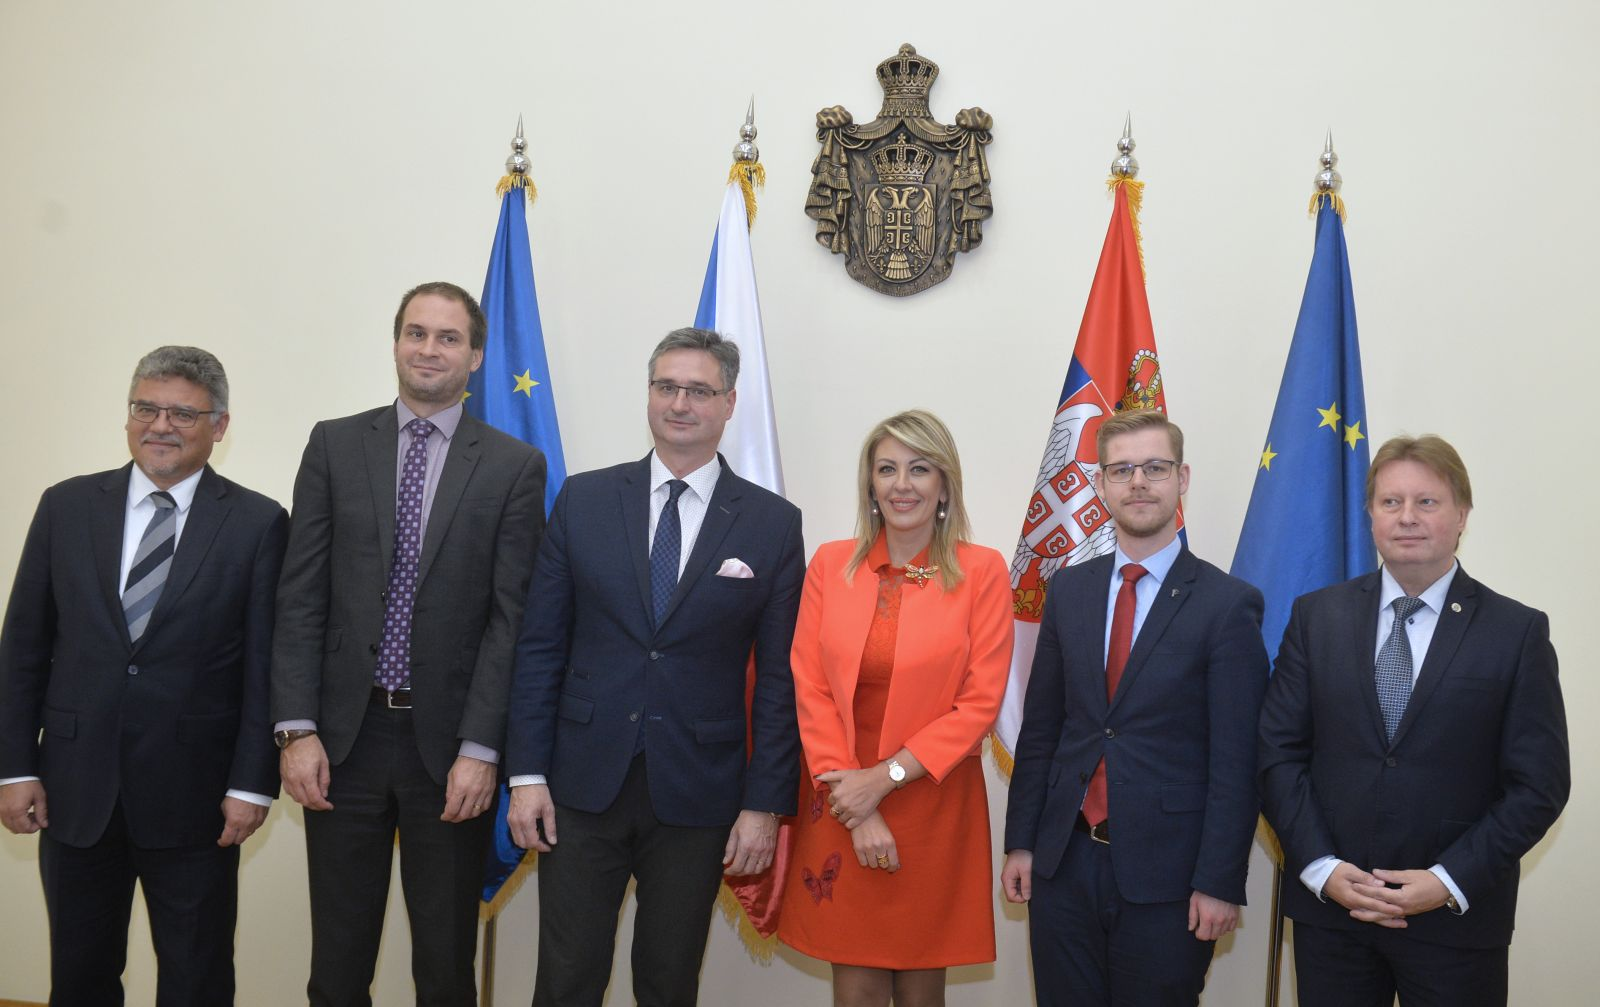 J. Joksimović and Czech parliamentarians: Czechia will actively support Serbia's European integration process